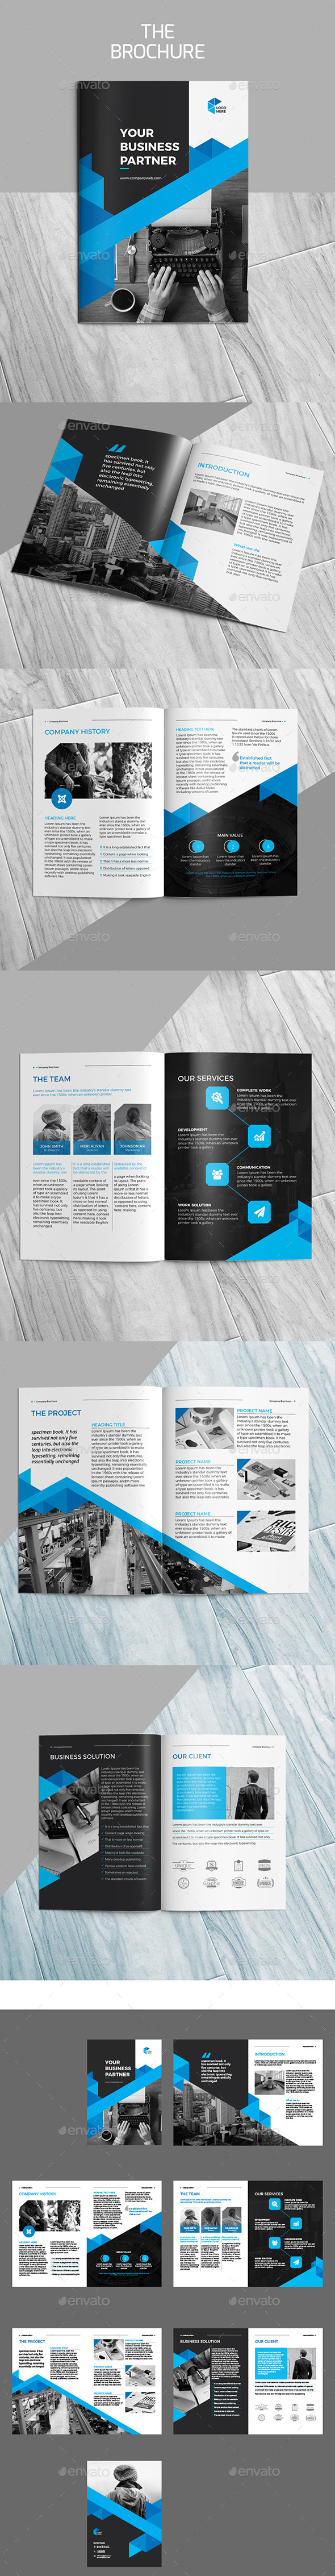 The Brochure - Brochures Print Templates